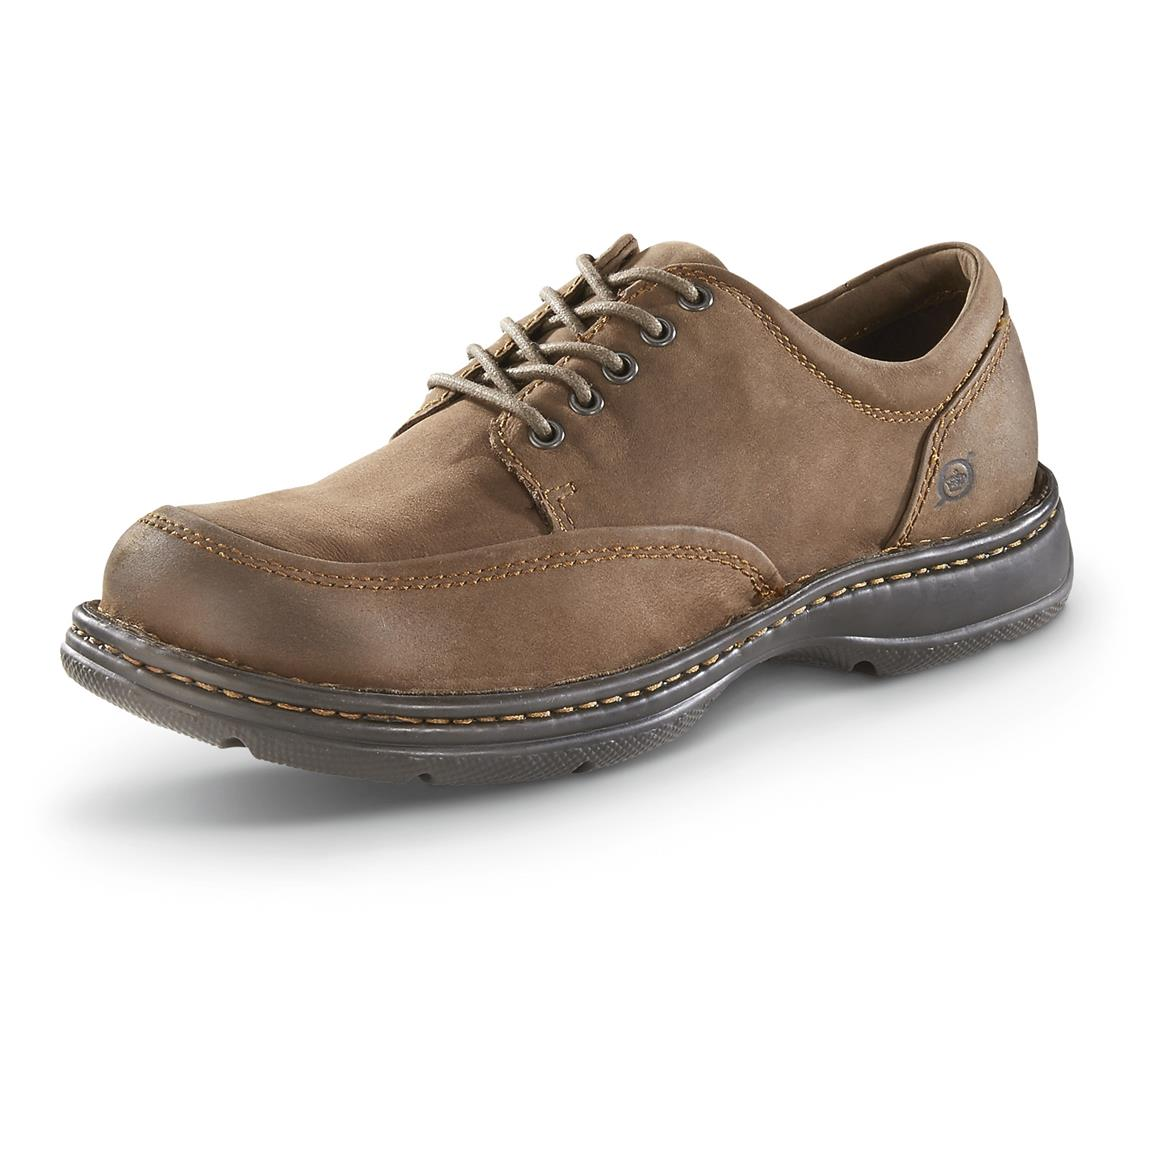 Børn Men's Sierra II Lace-up Oxford Shoes, Ironstone Gray